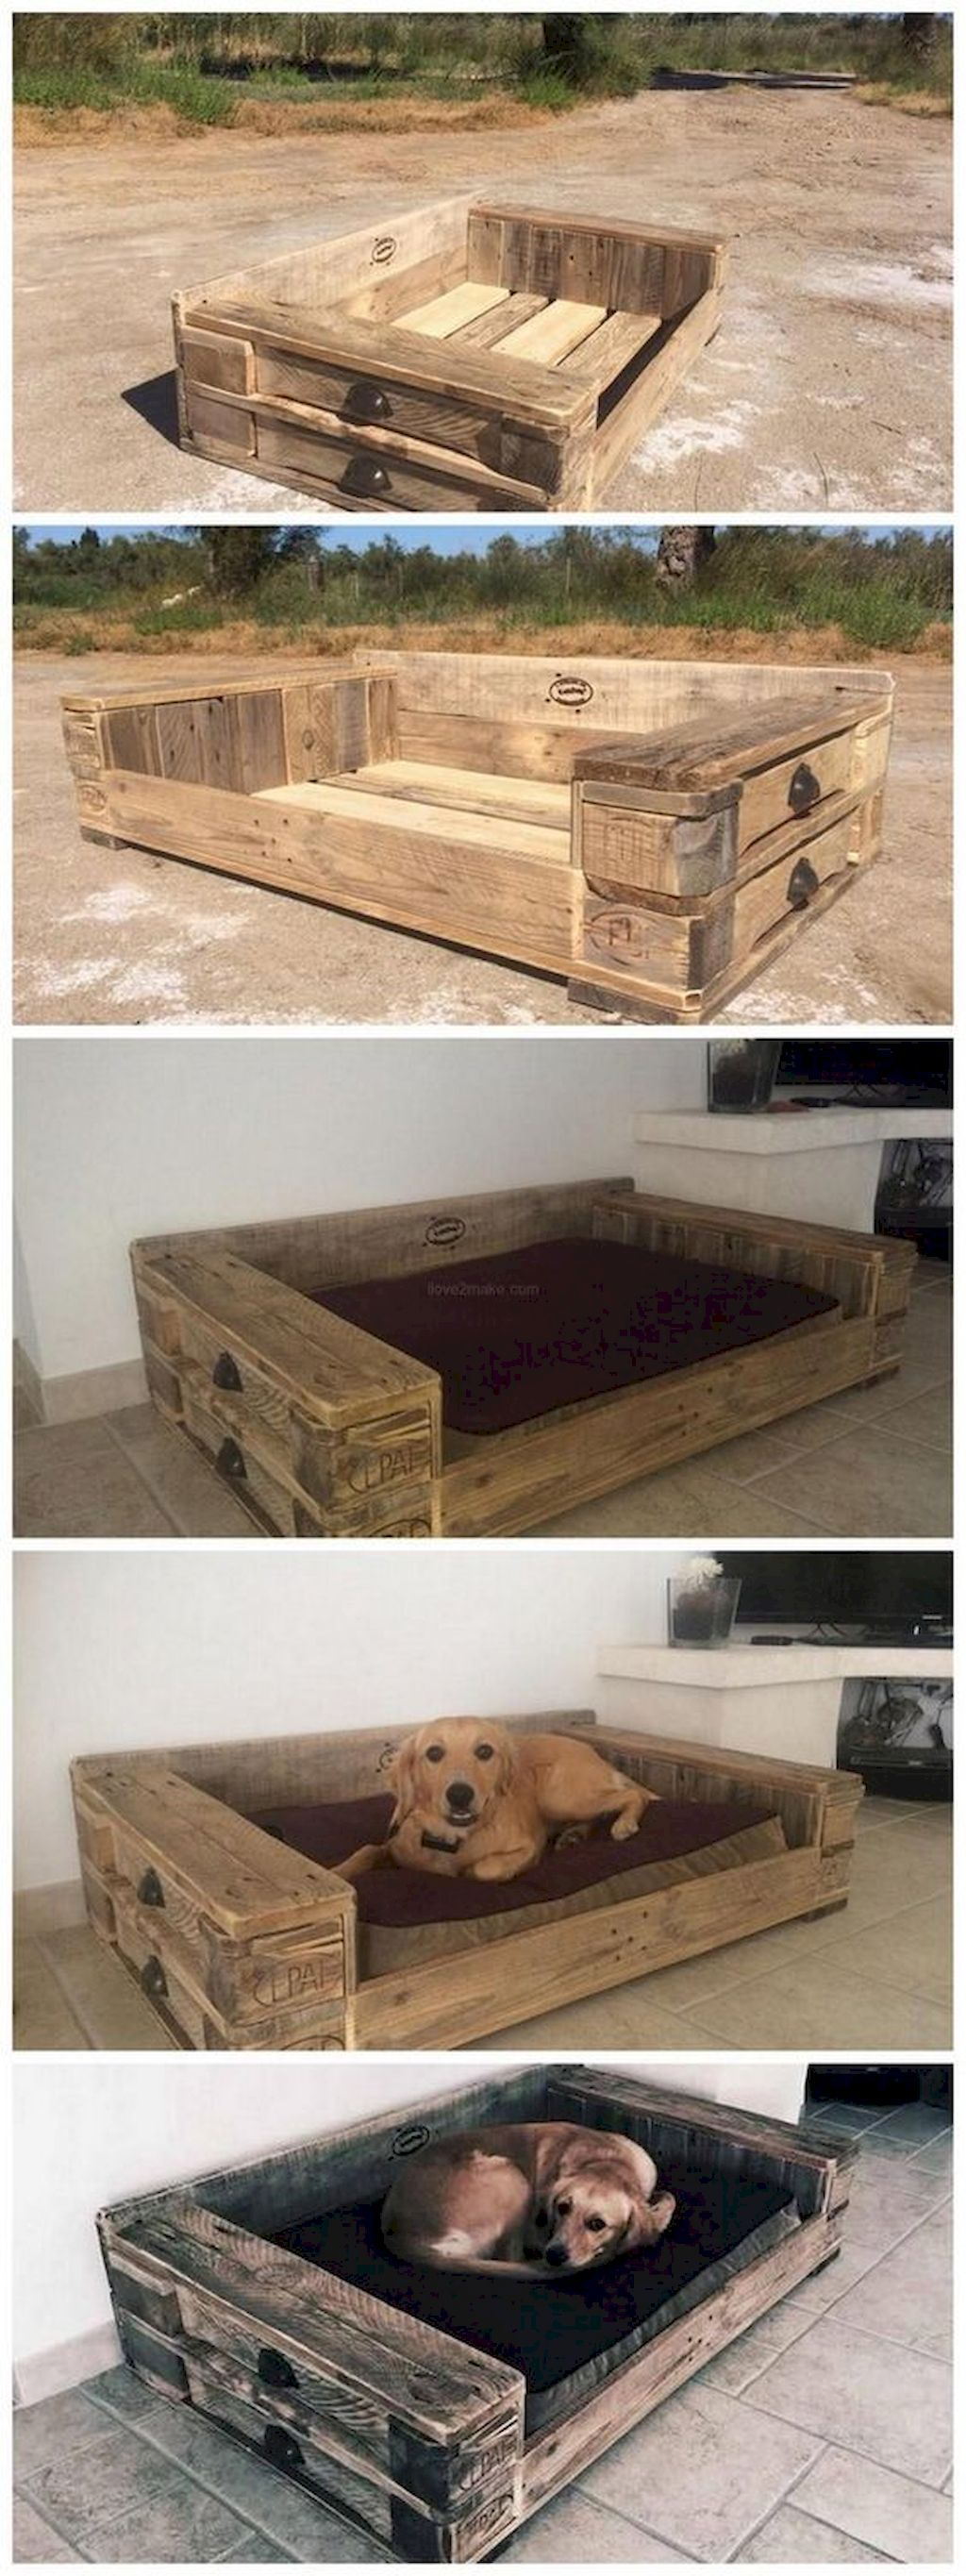 pallet furniture designs. 65 Stunning DIY Pallet Furniture Design Ideas Designs T